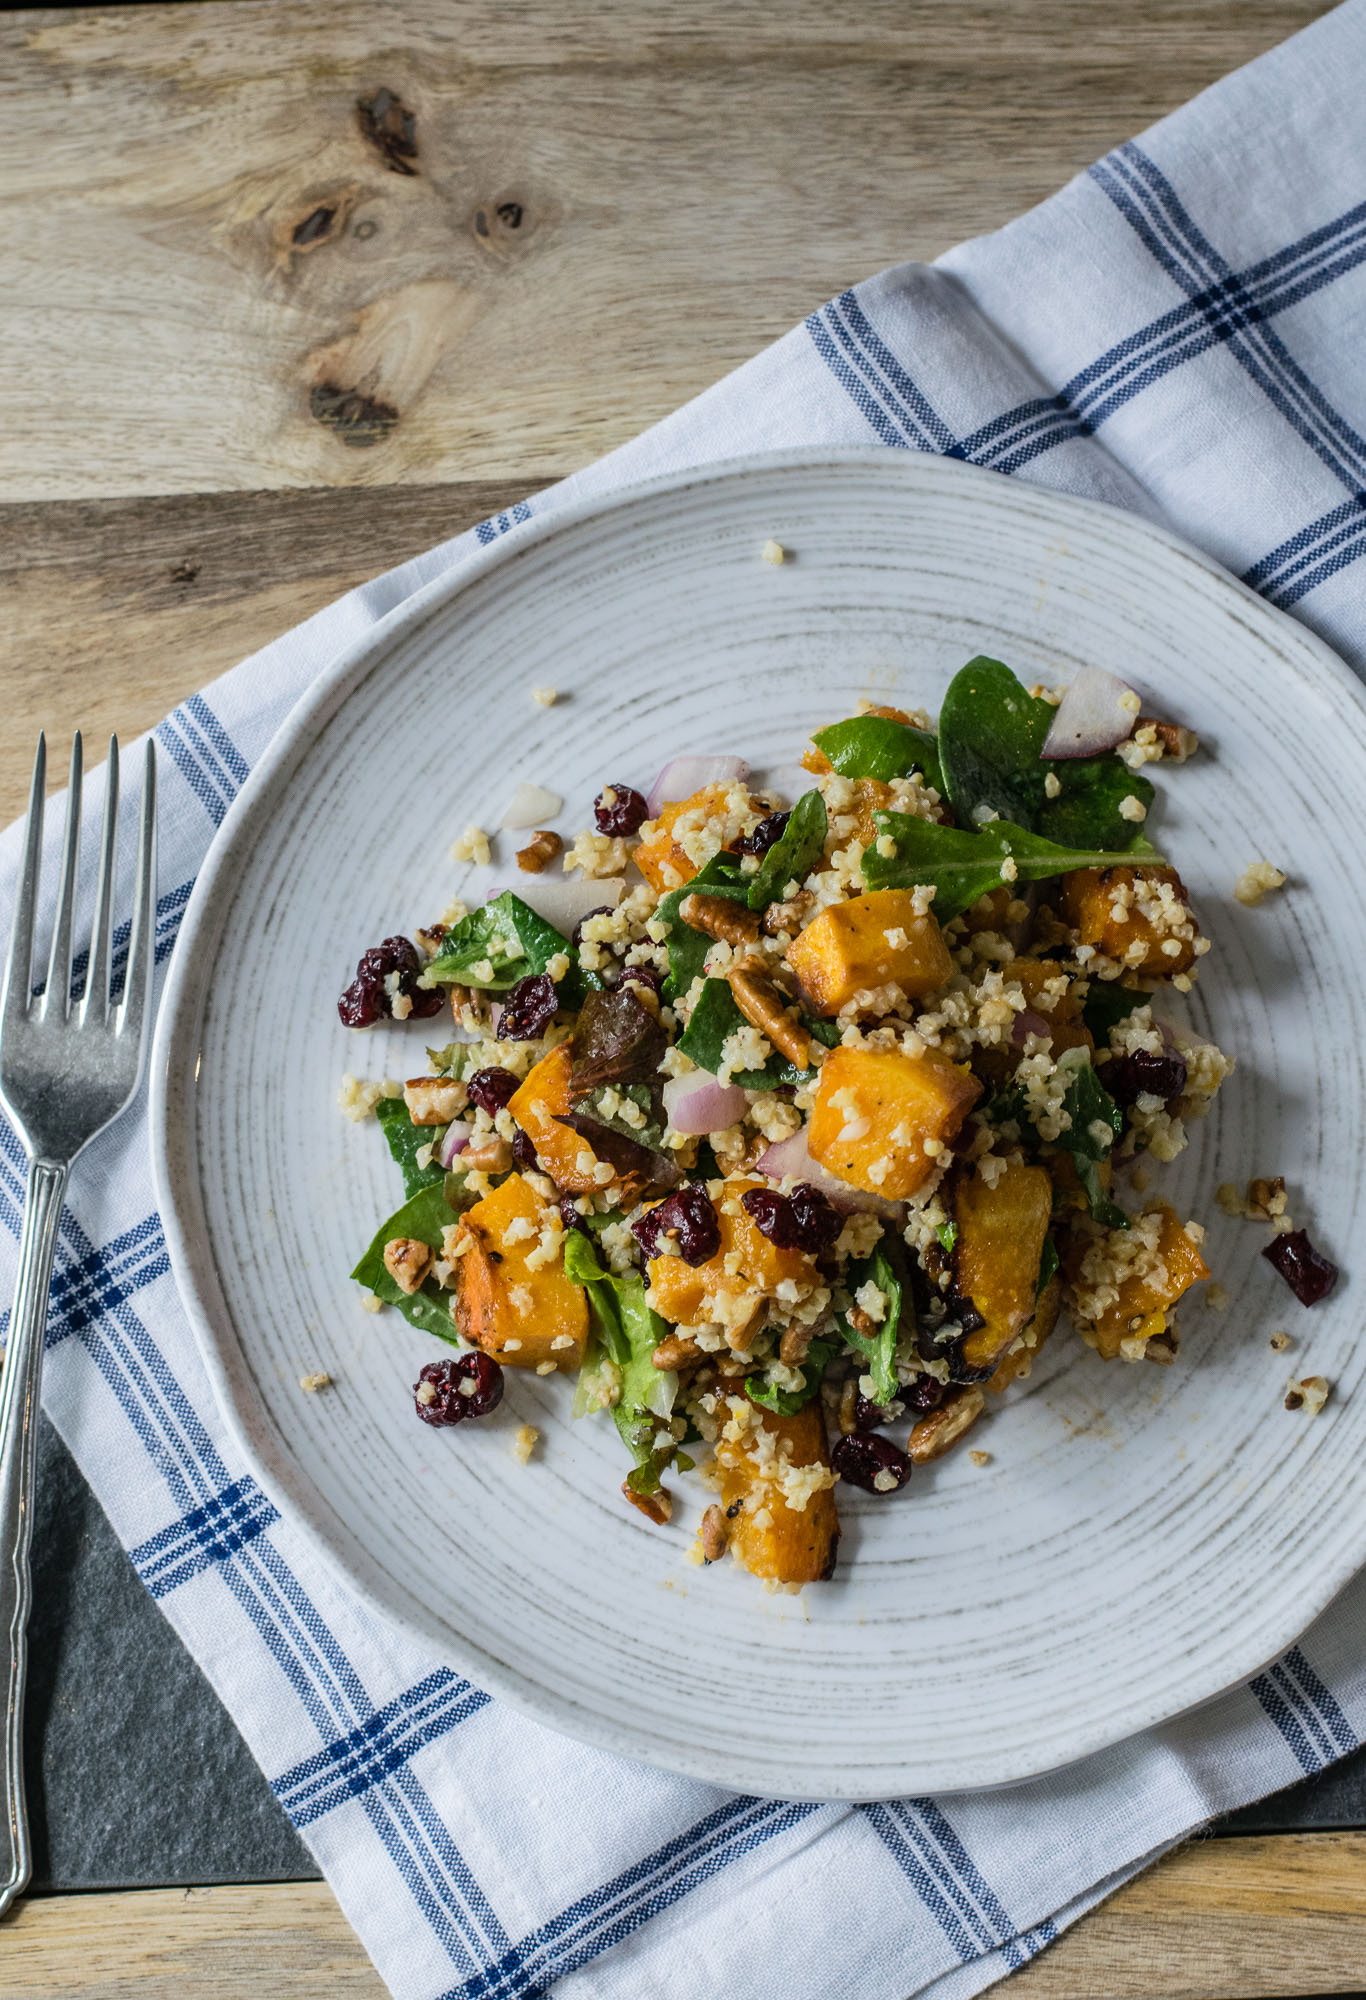 Roasted Butternut Squash and Millet Salad